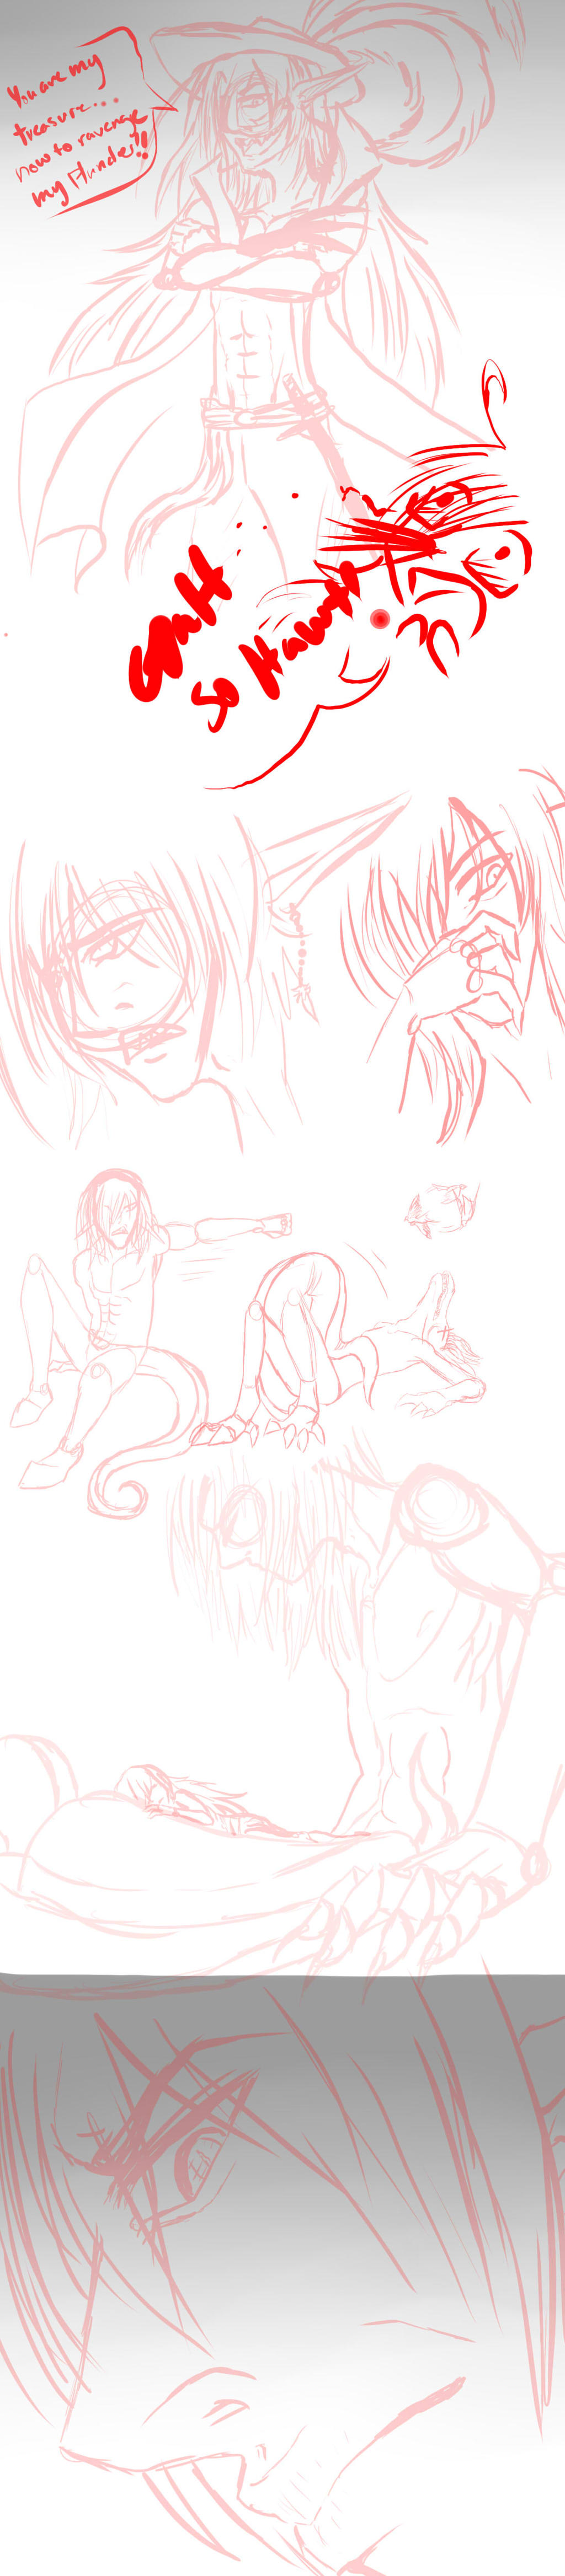 Sketch Dump 1 by SafireCreations